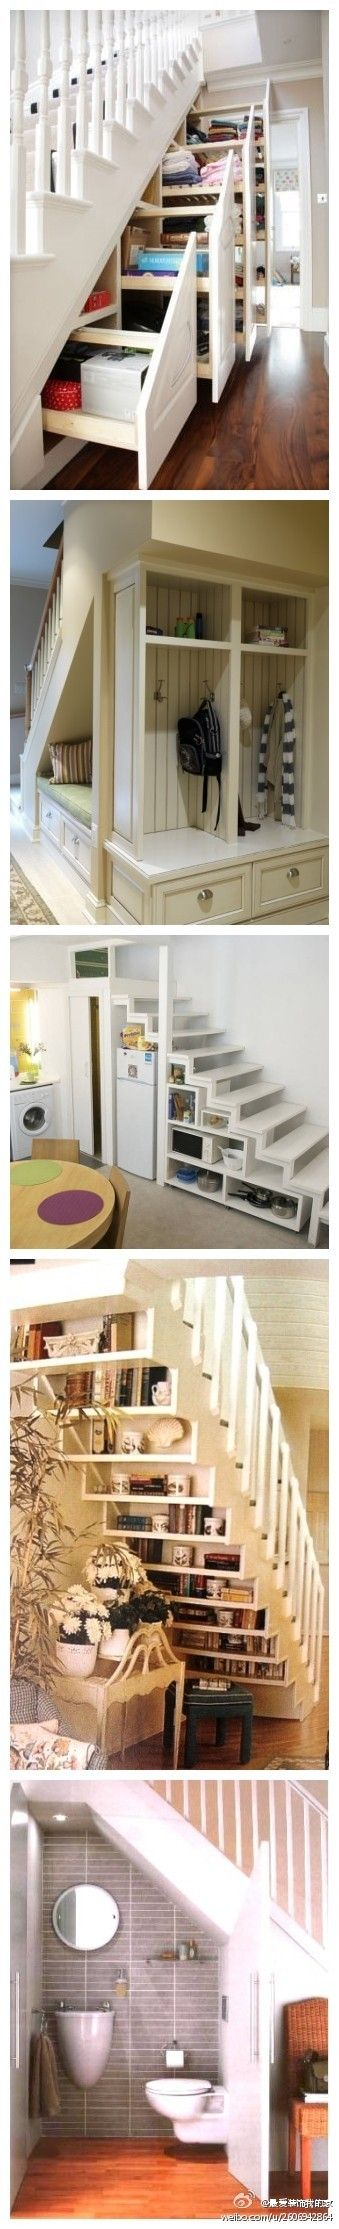 Cool ideas for under the stairs! That bathroom under the stairs?? We've already got half complete :)